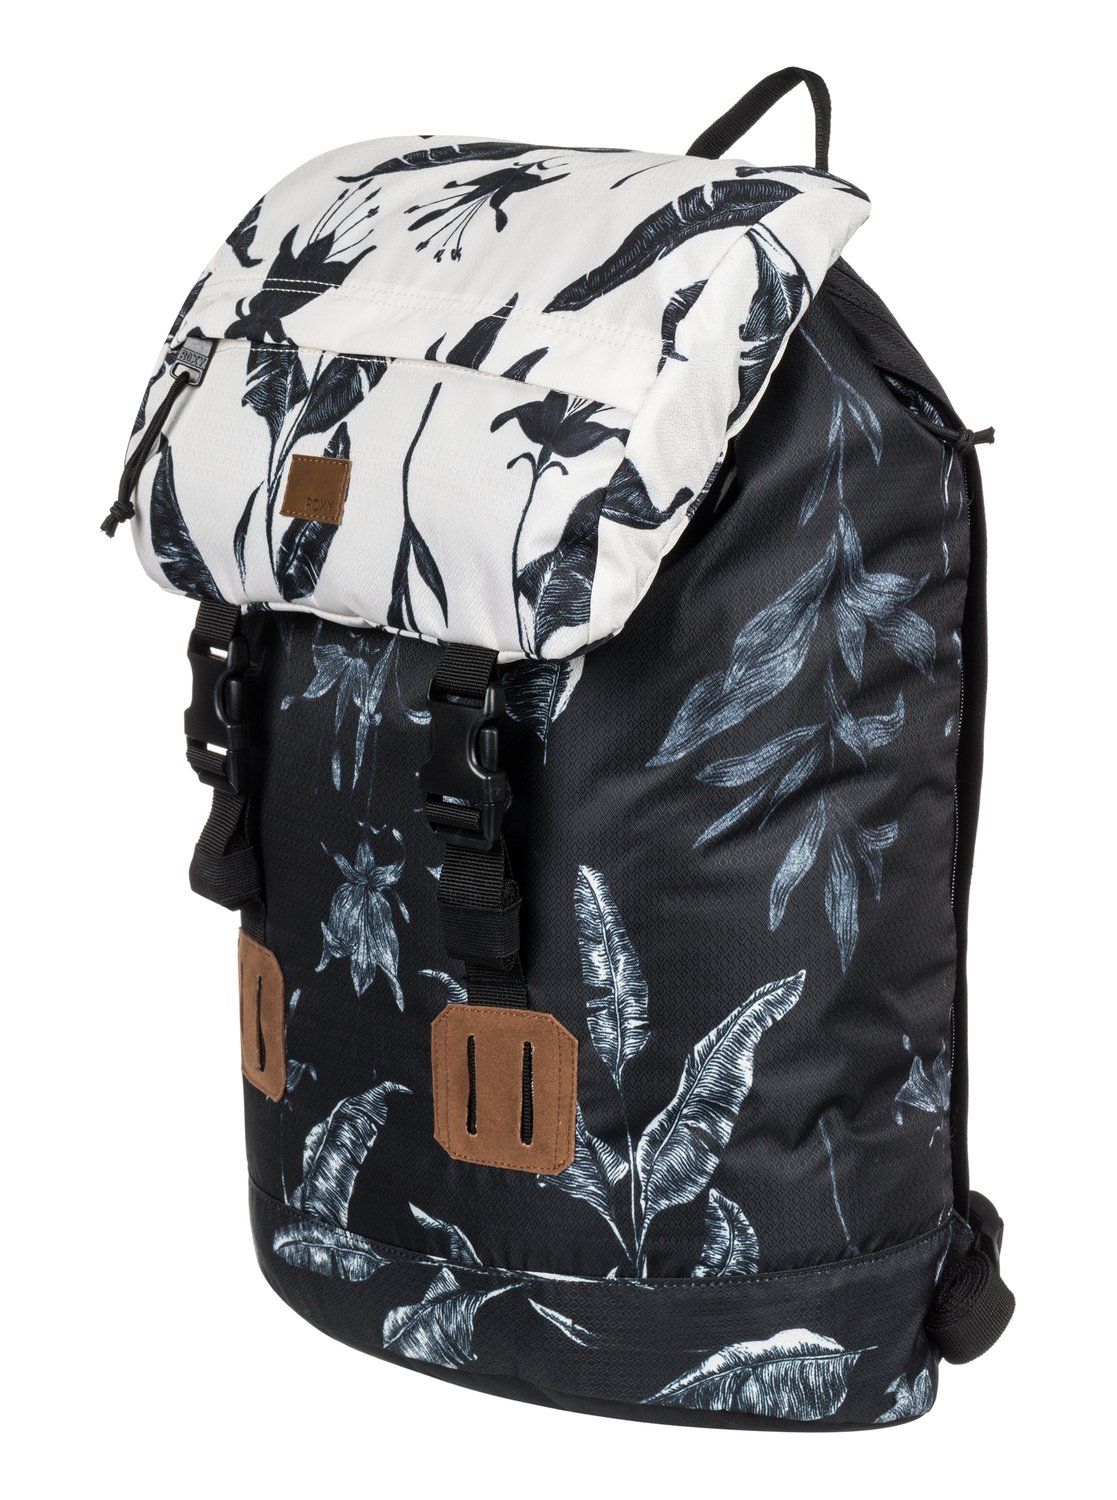 Sac à dos Quiksilver - Free Your Wild Love - 1 compartiment hANzfn1